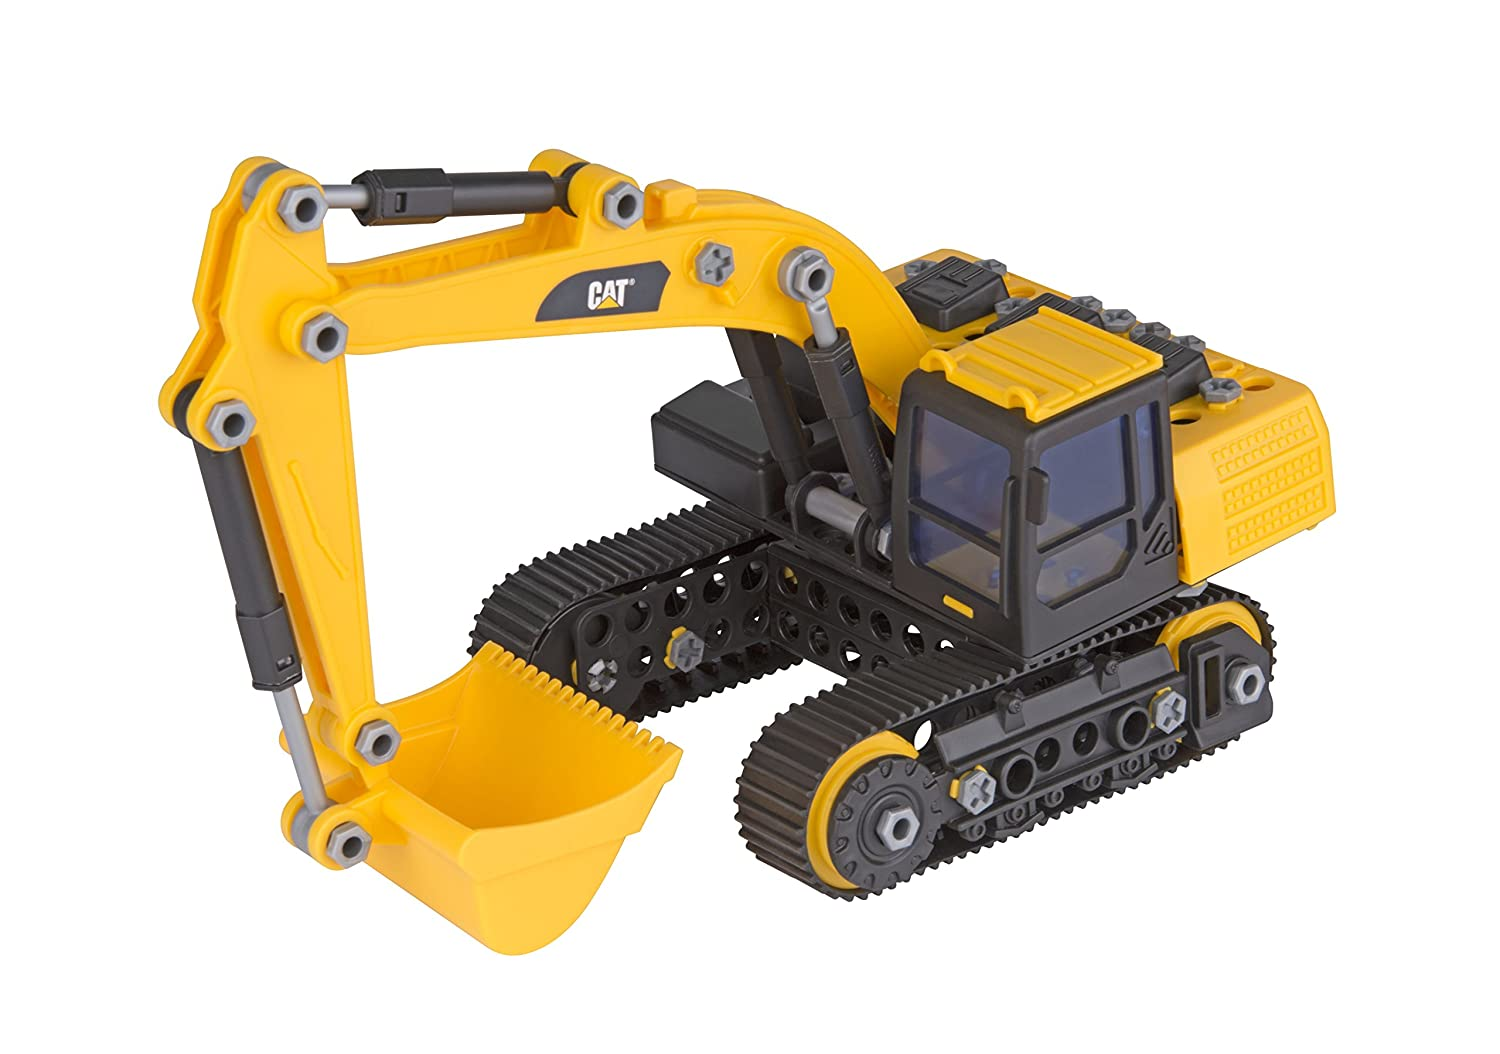 Caterpillar Bulldozer Toy With Drill Wow Blog